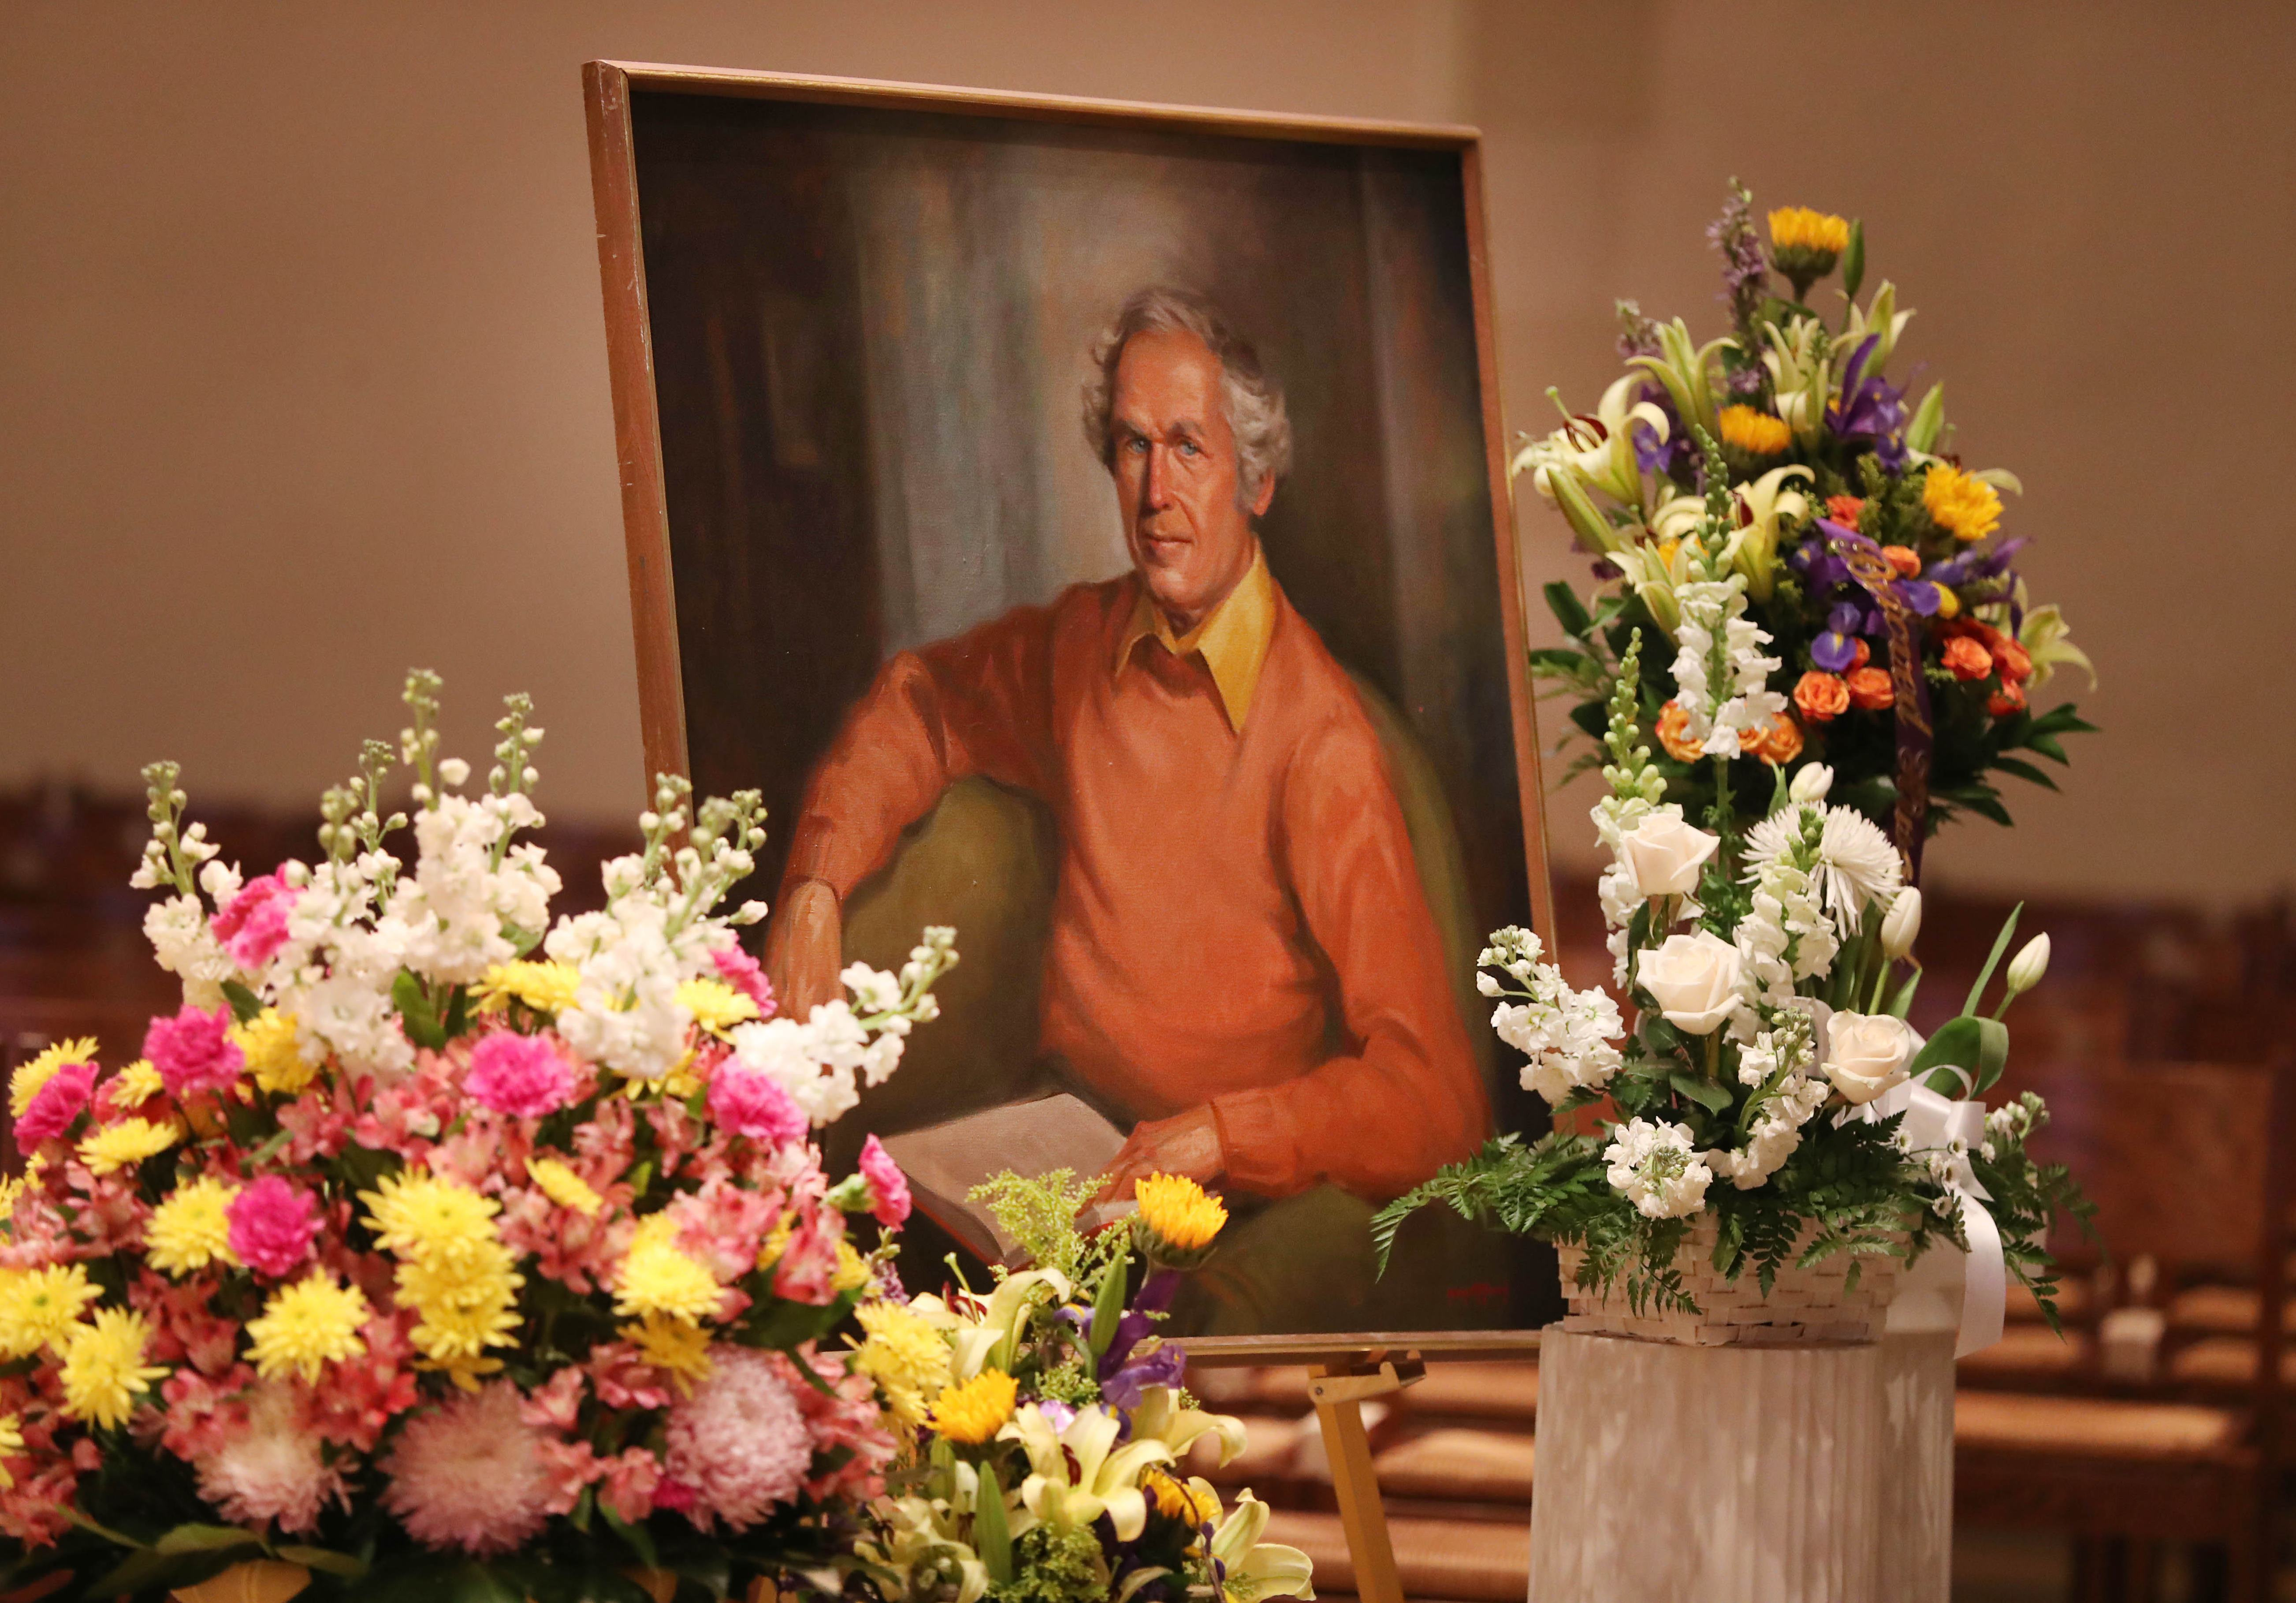 A memorial Mass was held at St. Joseph University Parish on Saturday, April 22, 2017, to celebrate the life of Judge John T. Curtin who passed away on April 14.  A painting of Judge Curtin is displayed up front.  (Sharon Cantillon/Buffalo News)